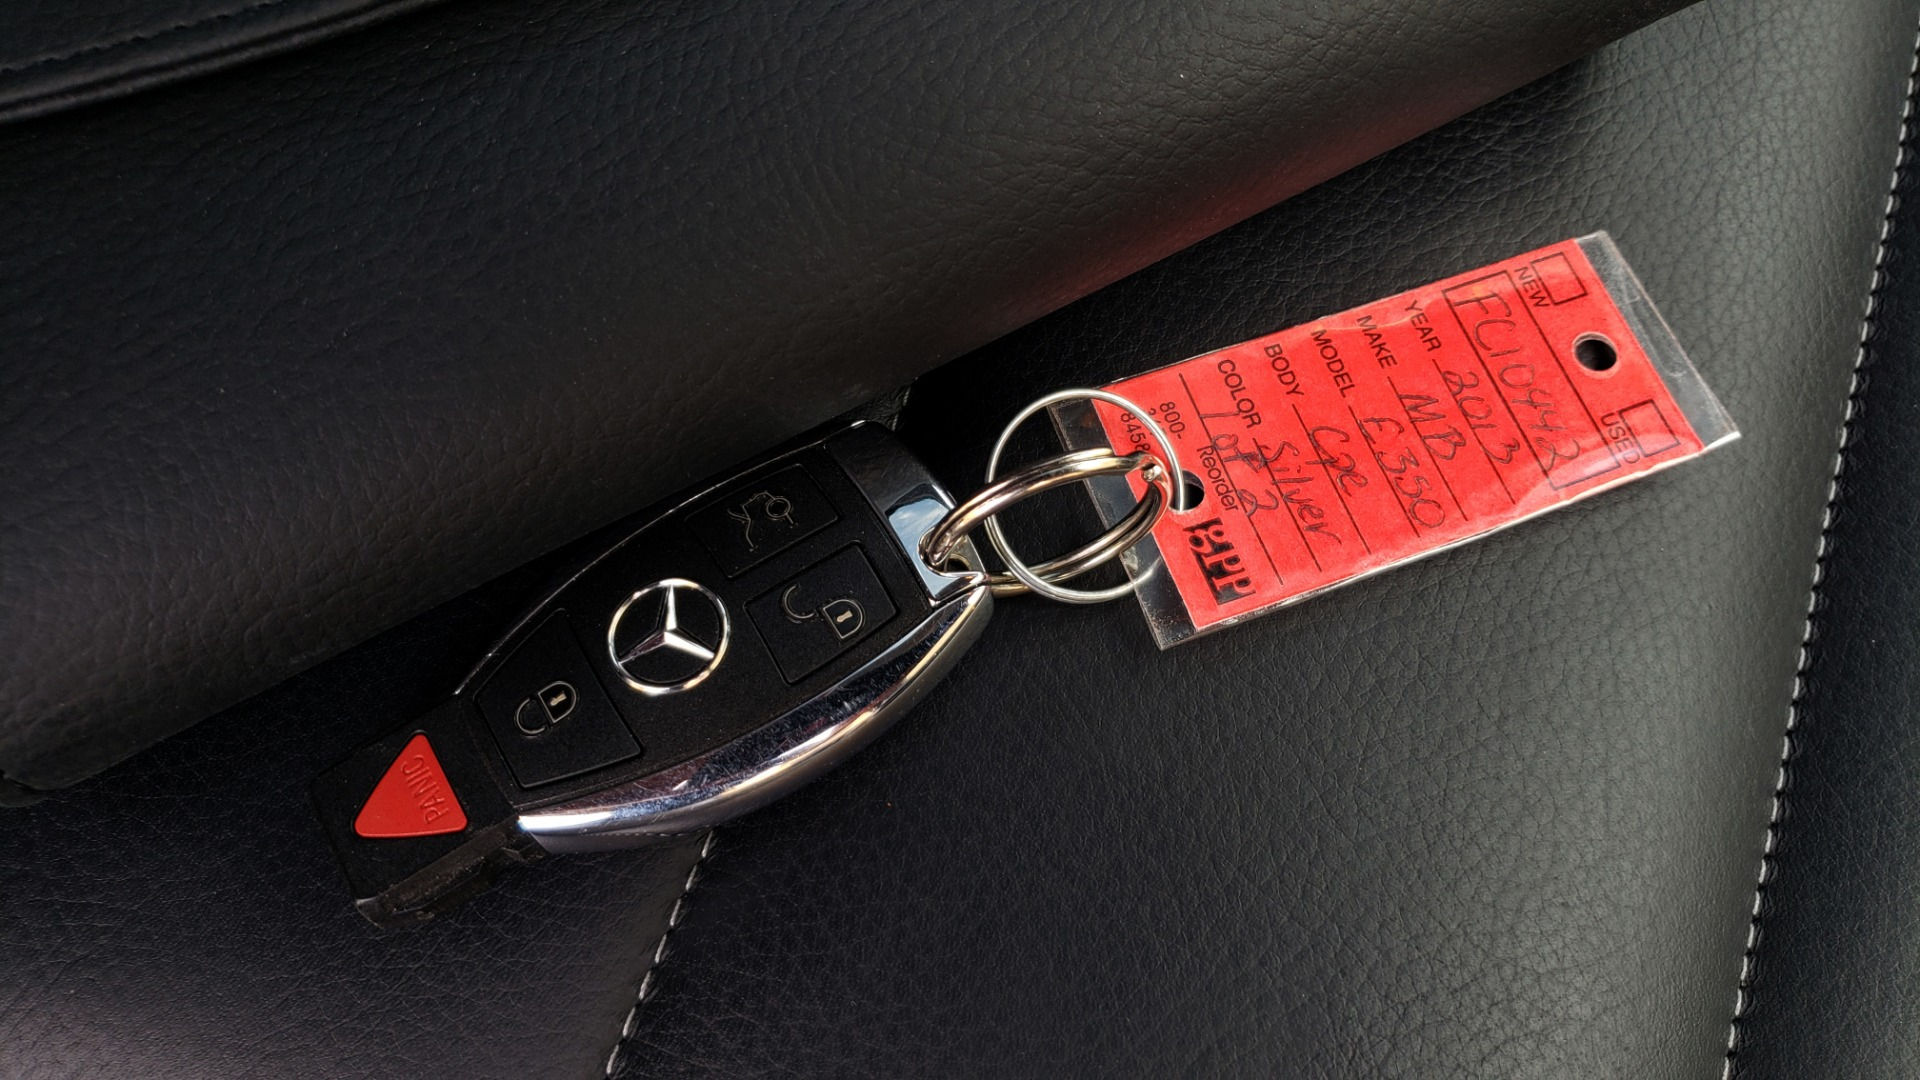 Used 2013 Mercedes-Benz E-CLASS E 350 COUPE PREM / NAV / PANO-ROFF / KEYLESS-GO / REARVIEW for sale Sold at Formula Imports in Charlotte NC 28227 89